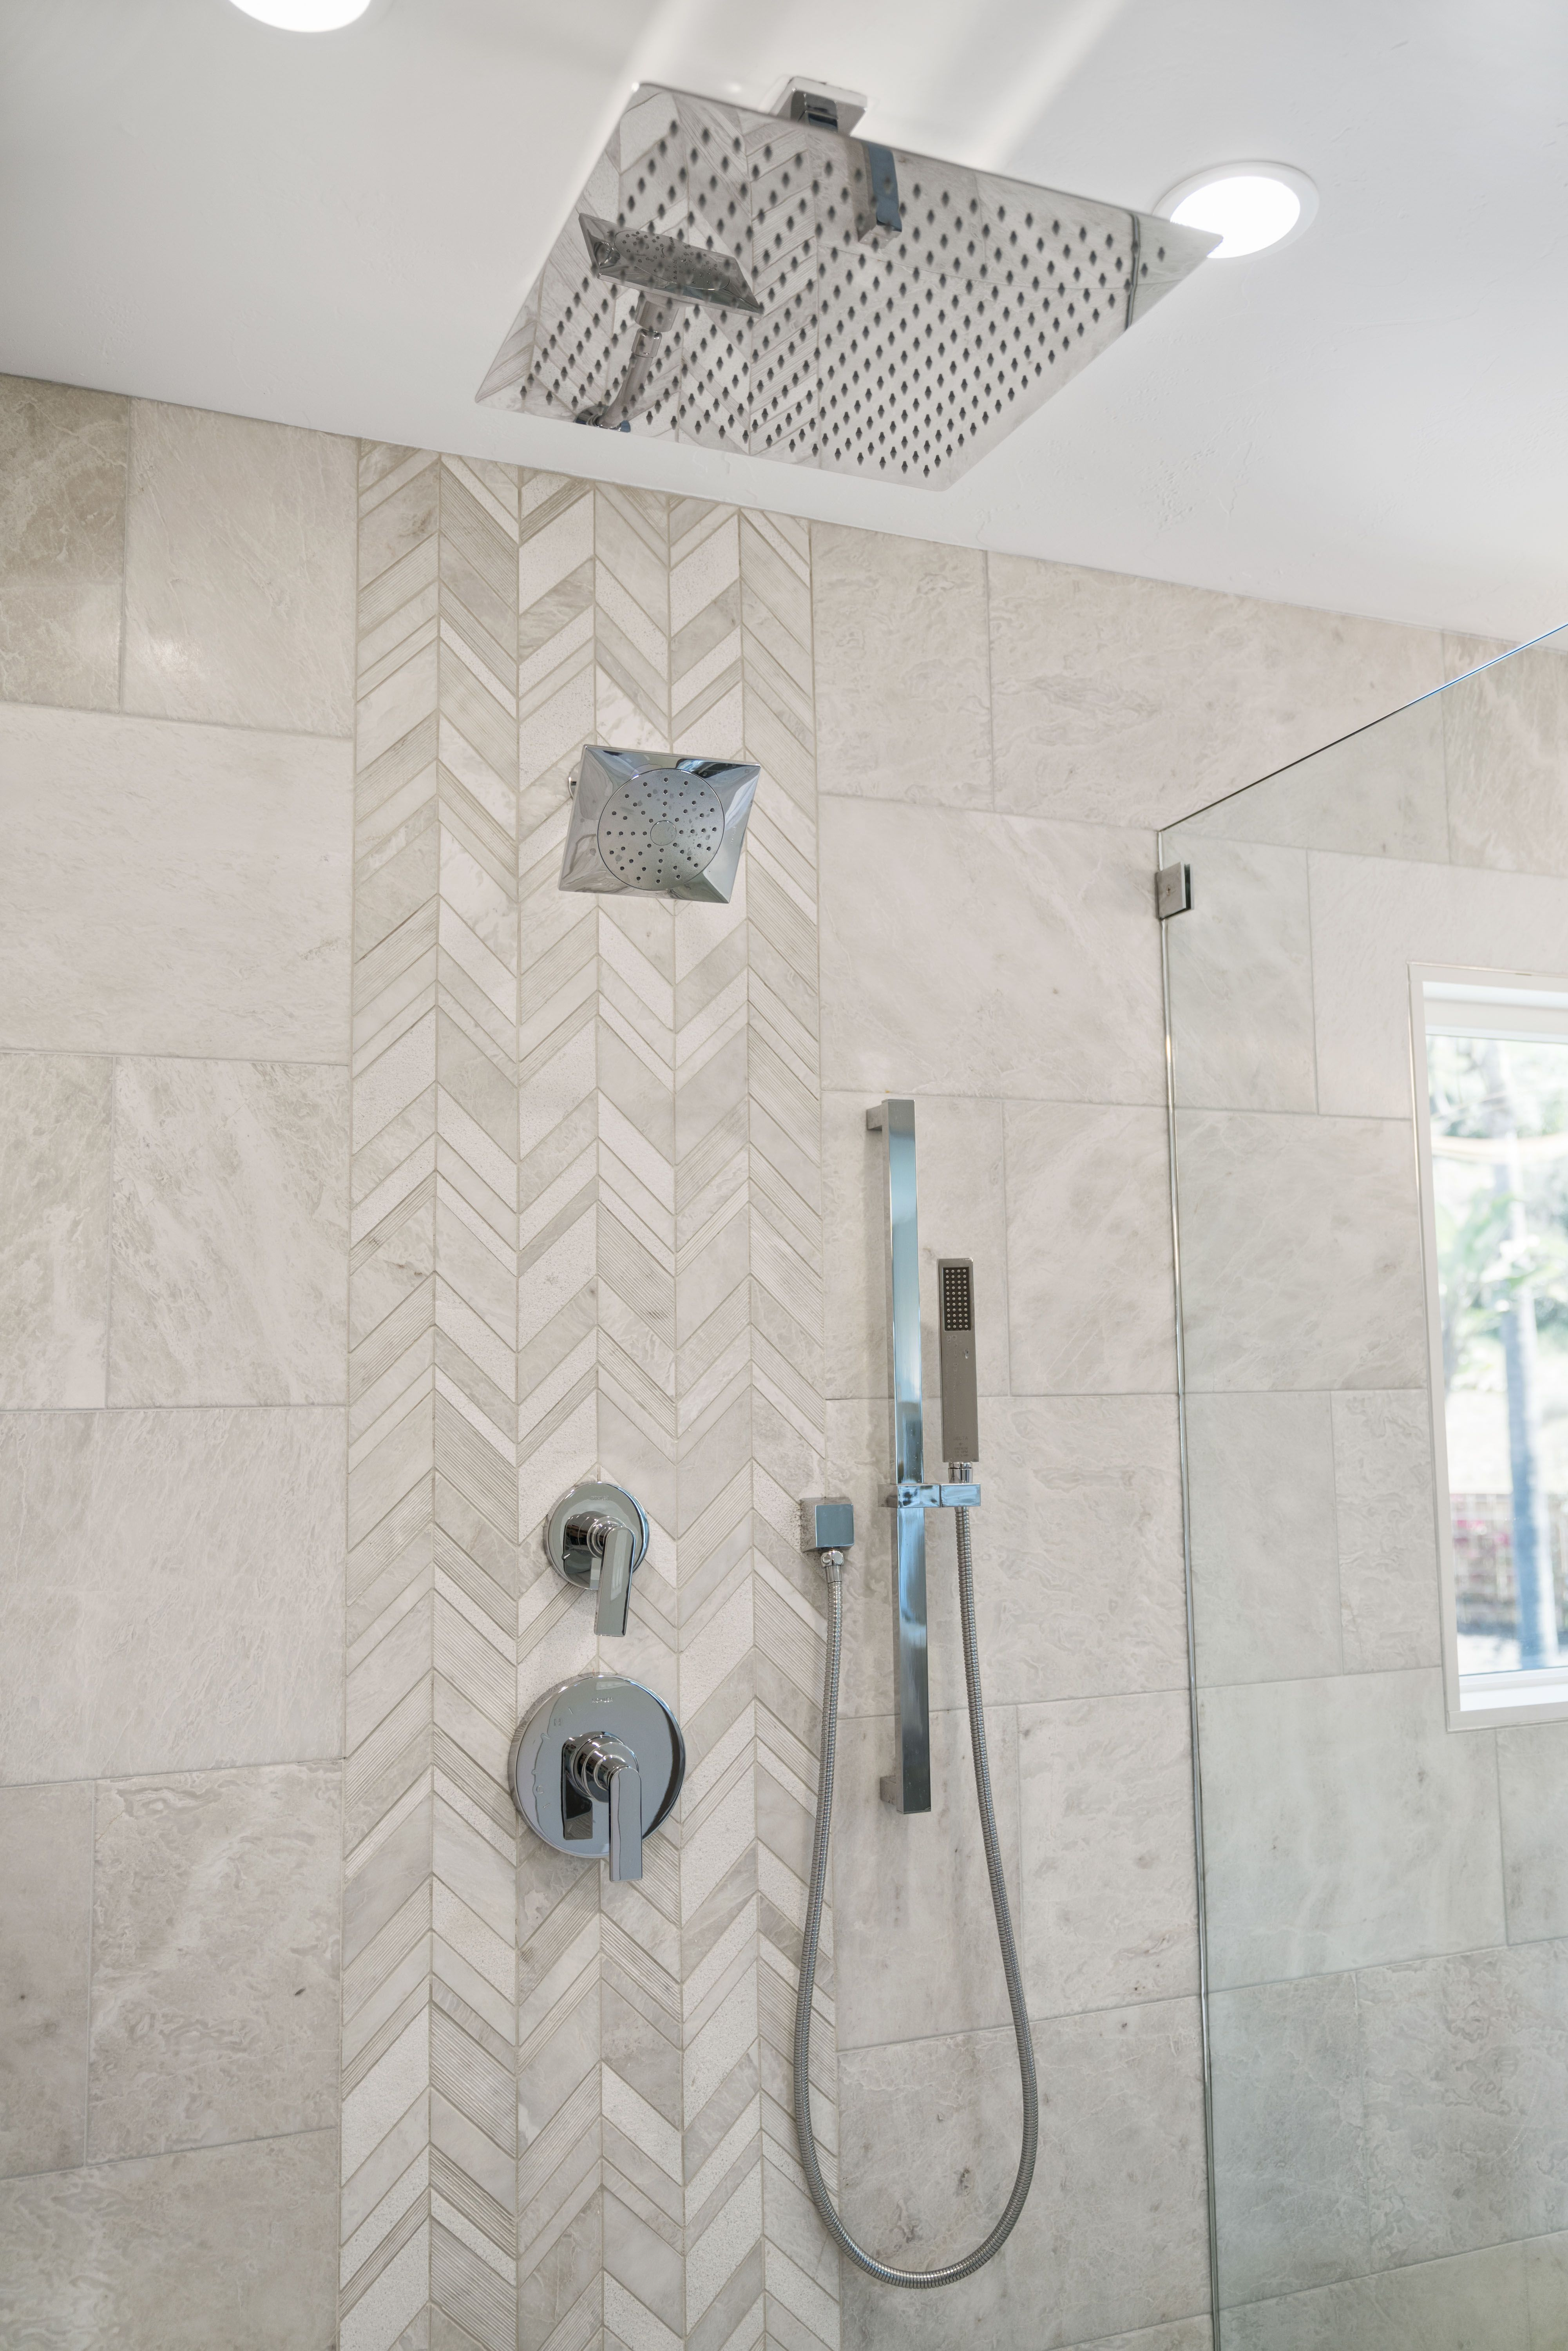 Imported Iridescent Chevron Pattern Tiles Meticulously Laid In